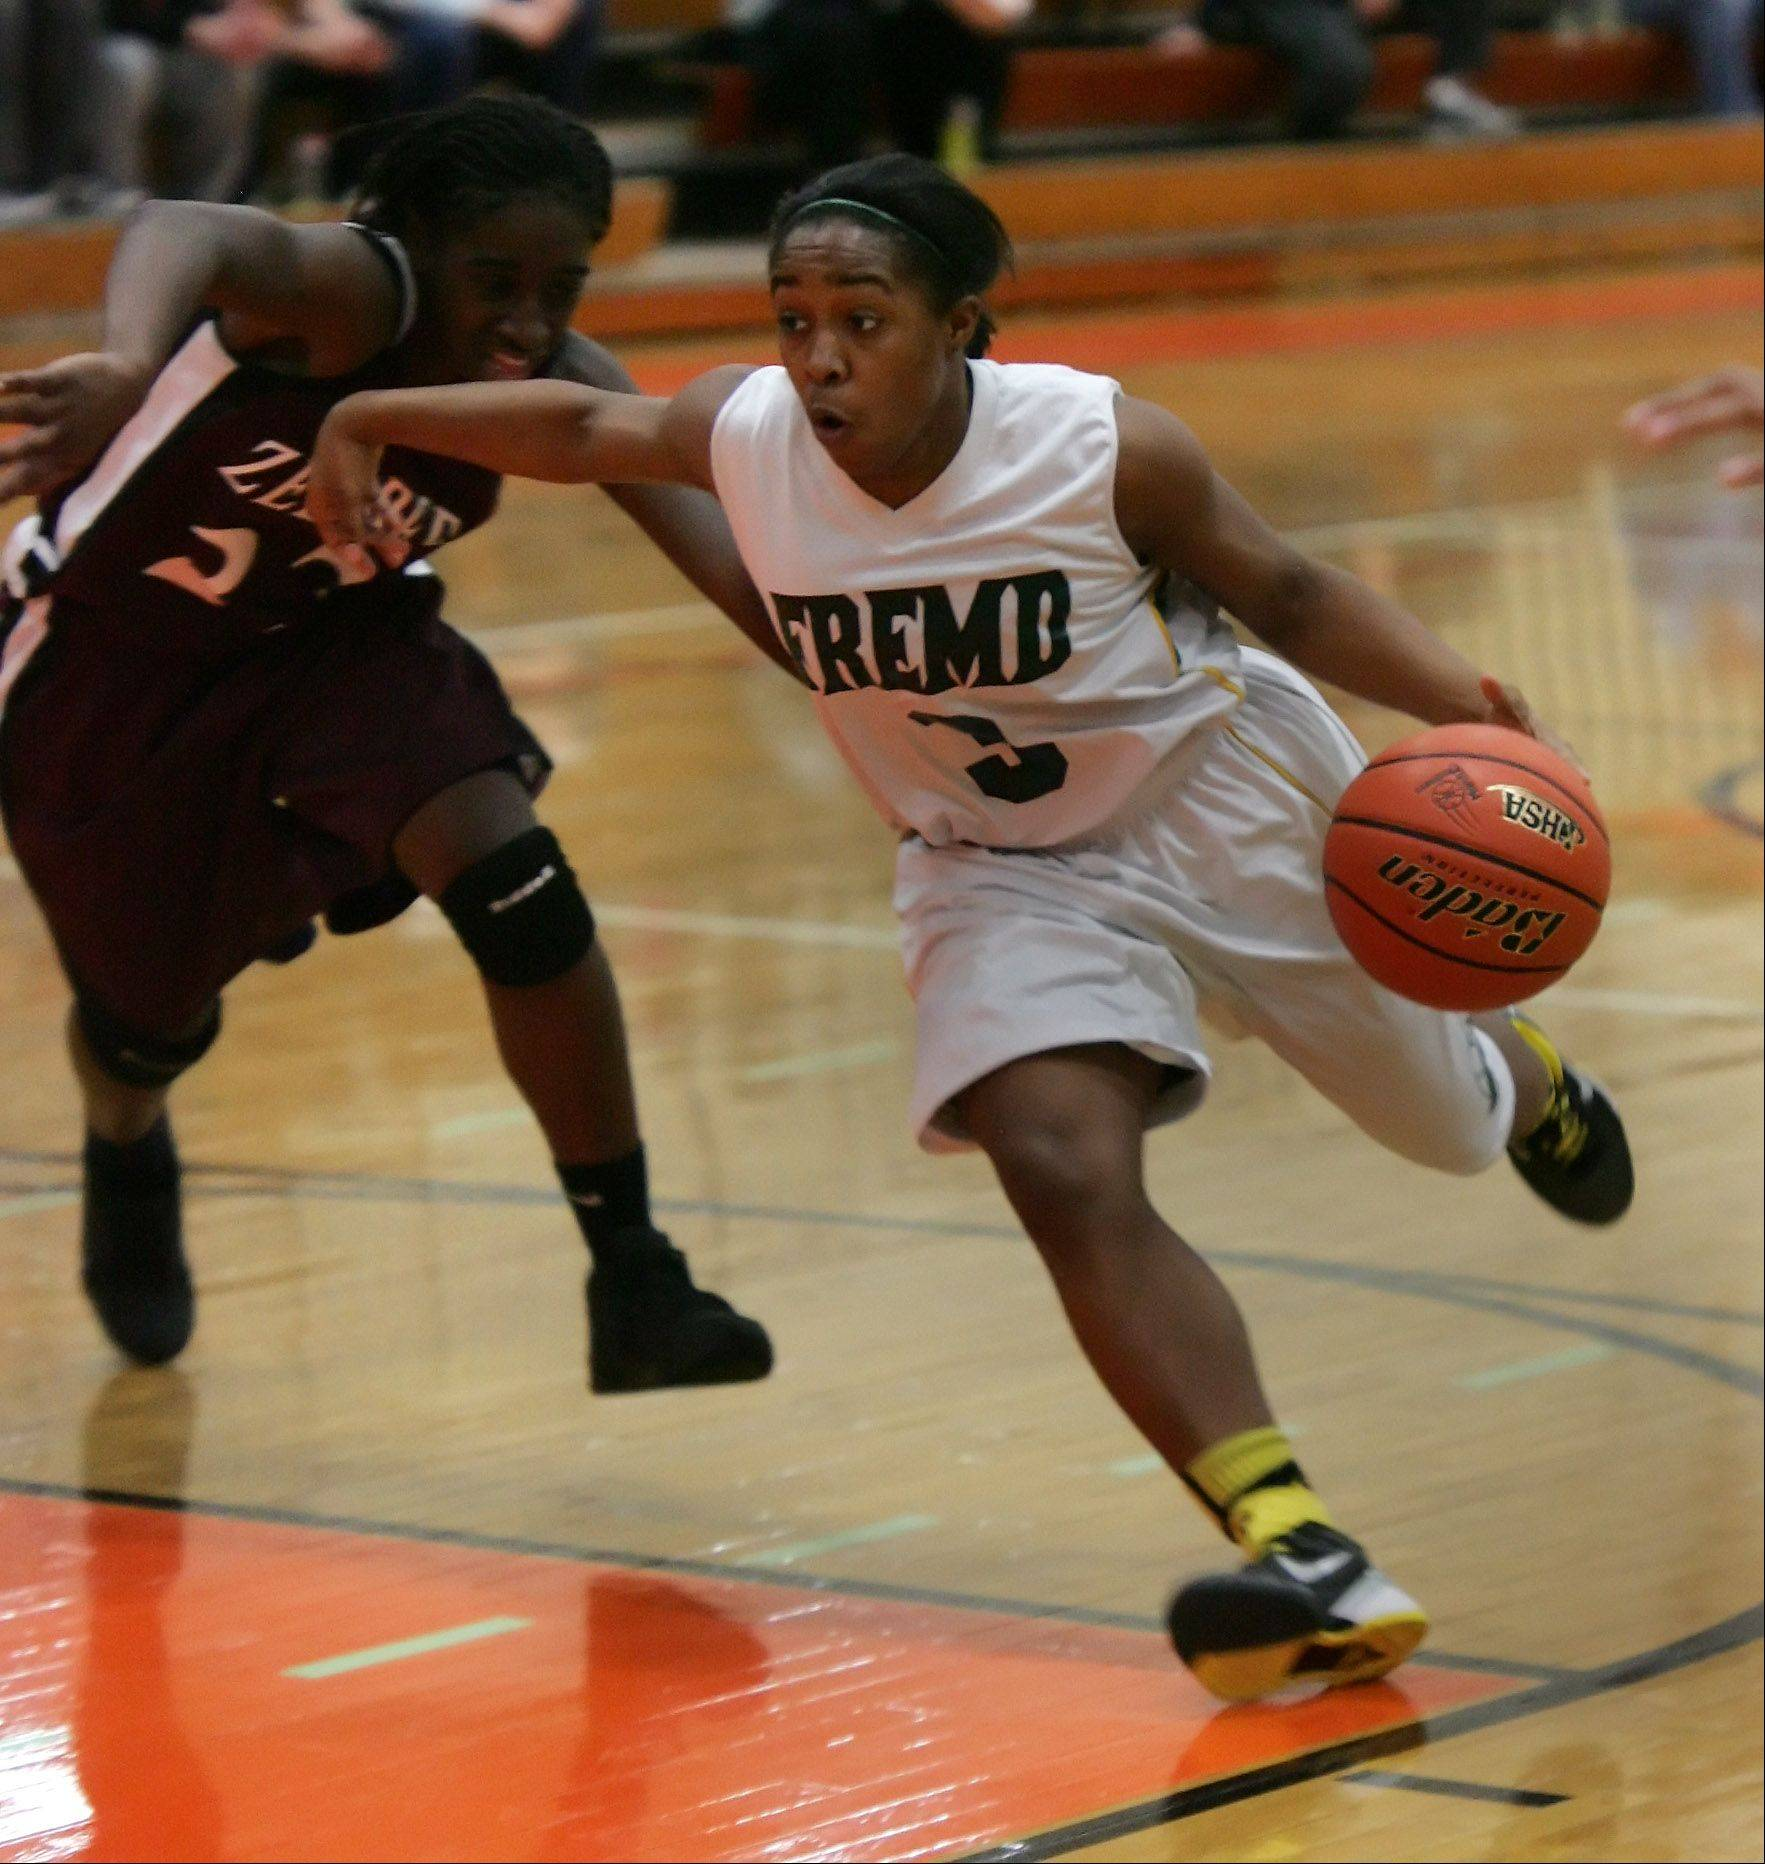 Fremd guard Brianna Lewis drives around Zion-Benton player T.T. Maggett during Class 4A sectional semifinal play at Libertyville High School on Monday.